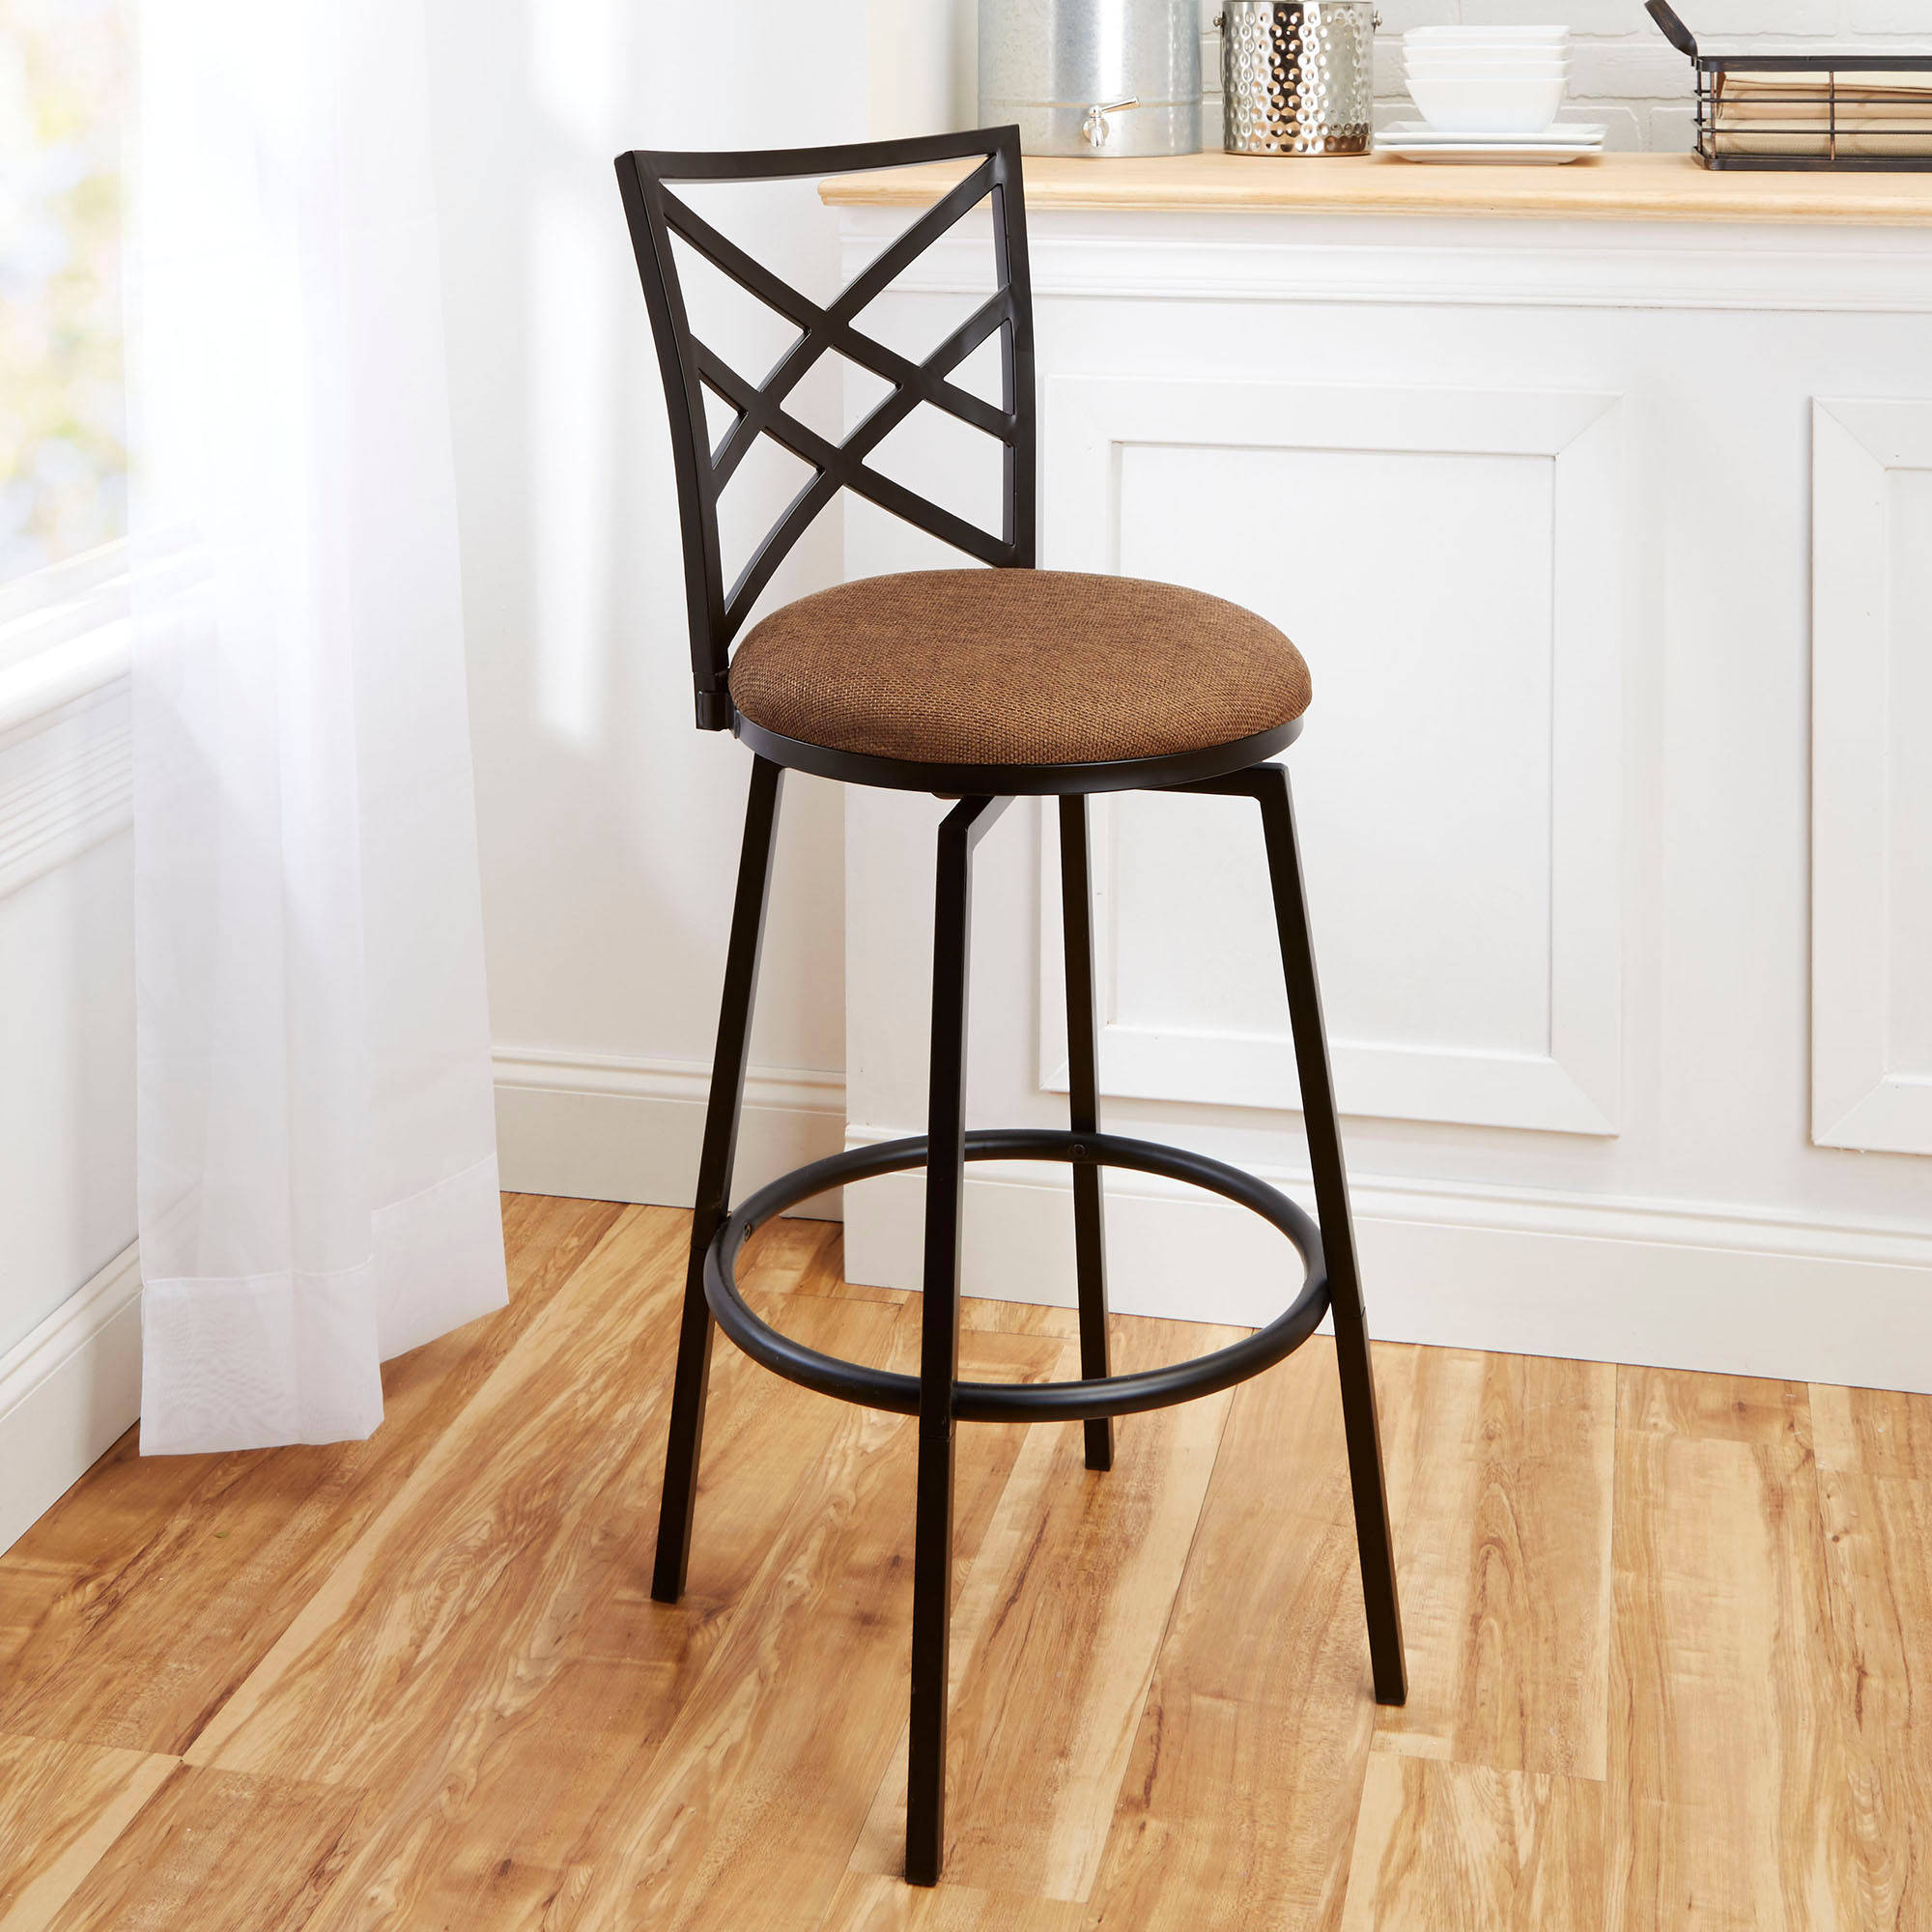 "Transitional Avery 30"" Barstool with Beige Woven Swivel Seat, Matte Black Finish"